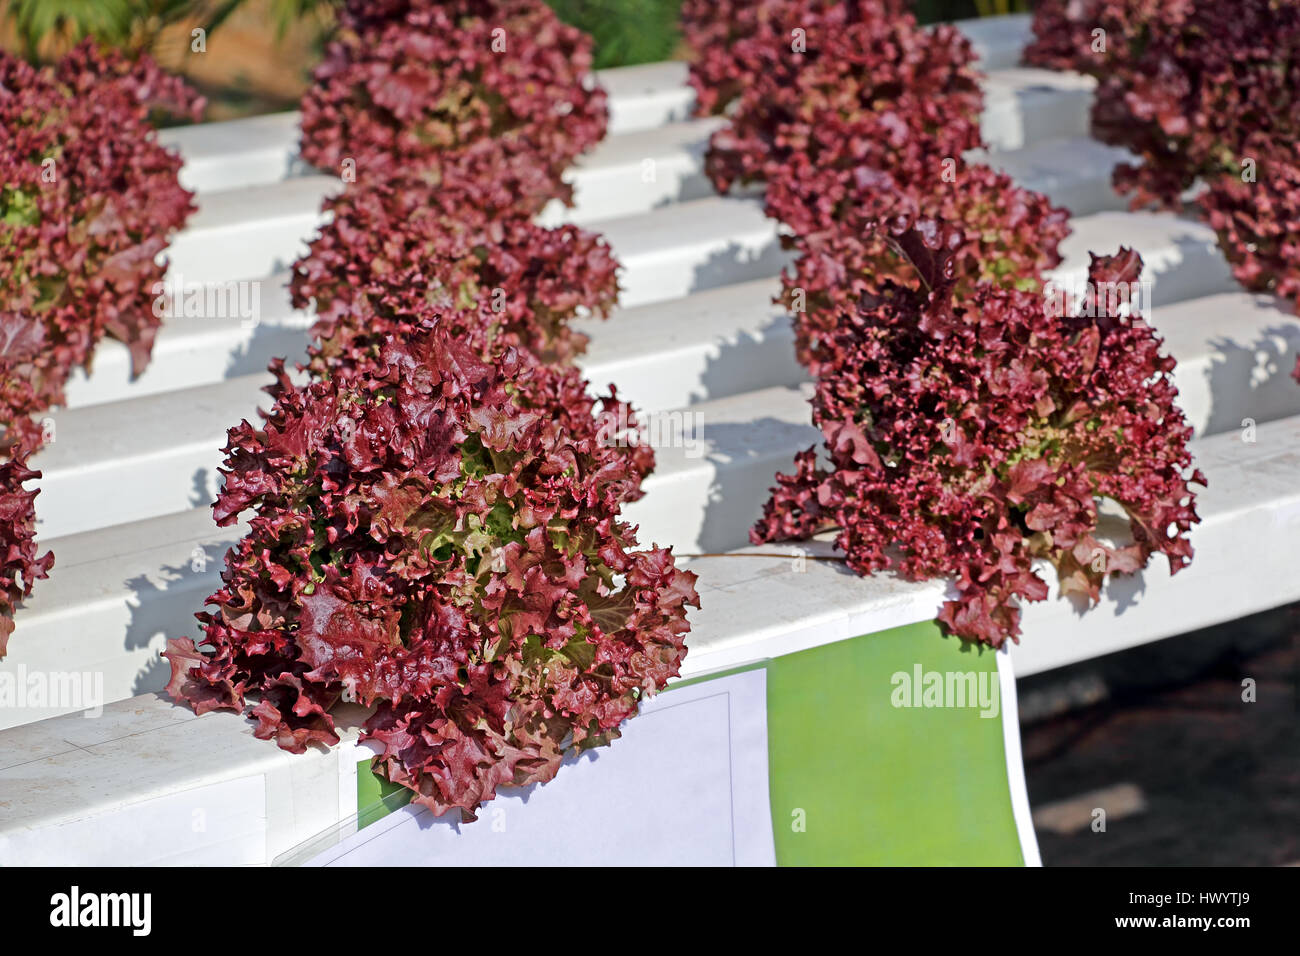 Lettuce vegetable growing in hydroponics system, a method of plant cultivation without the use of soil and in controlled - Stock Image